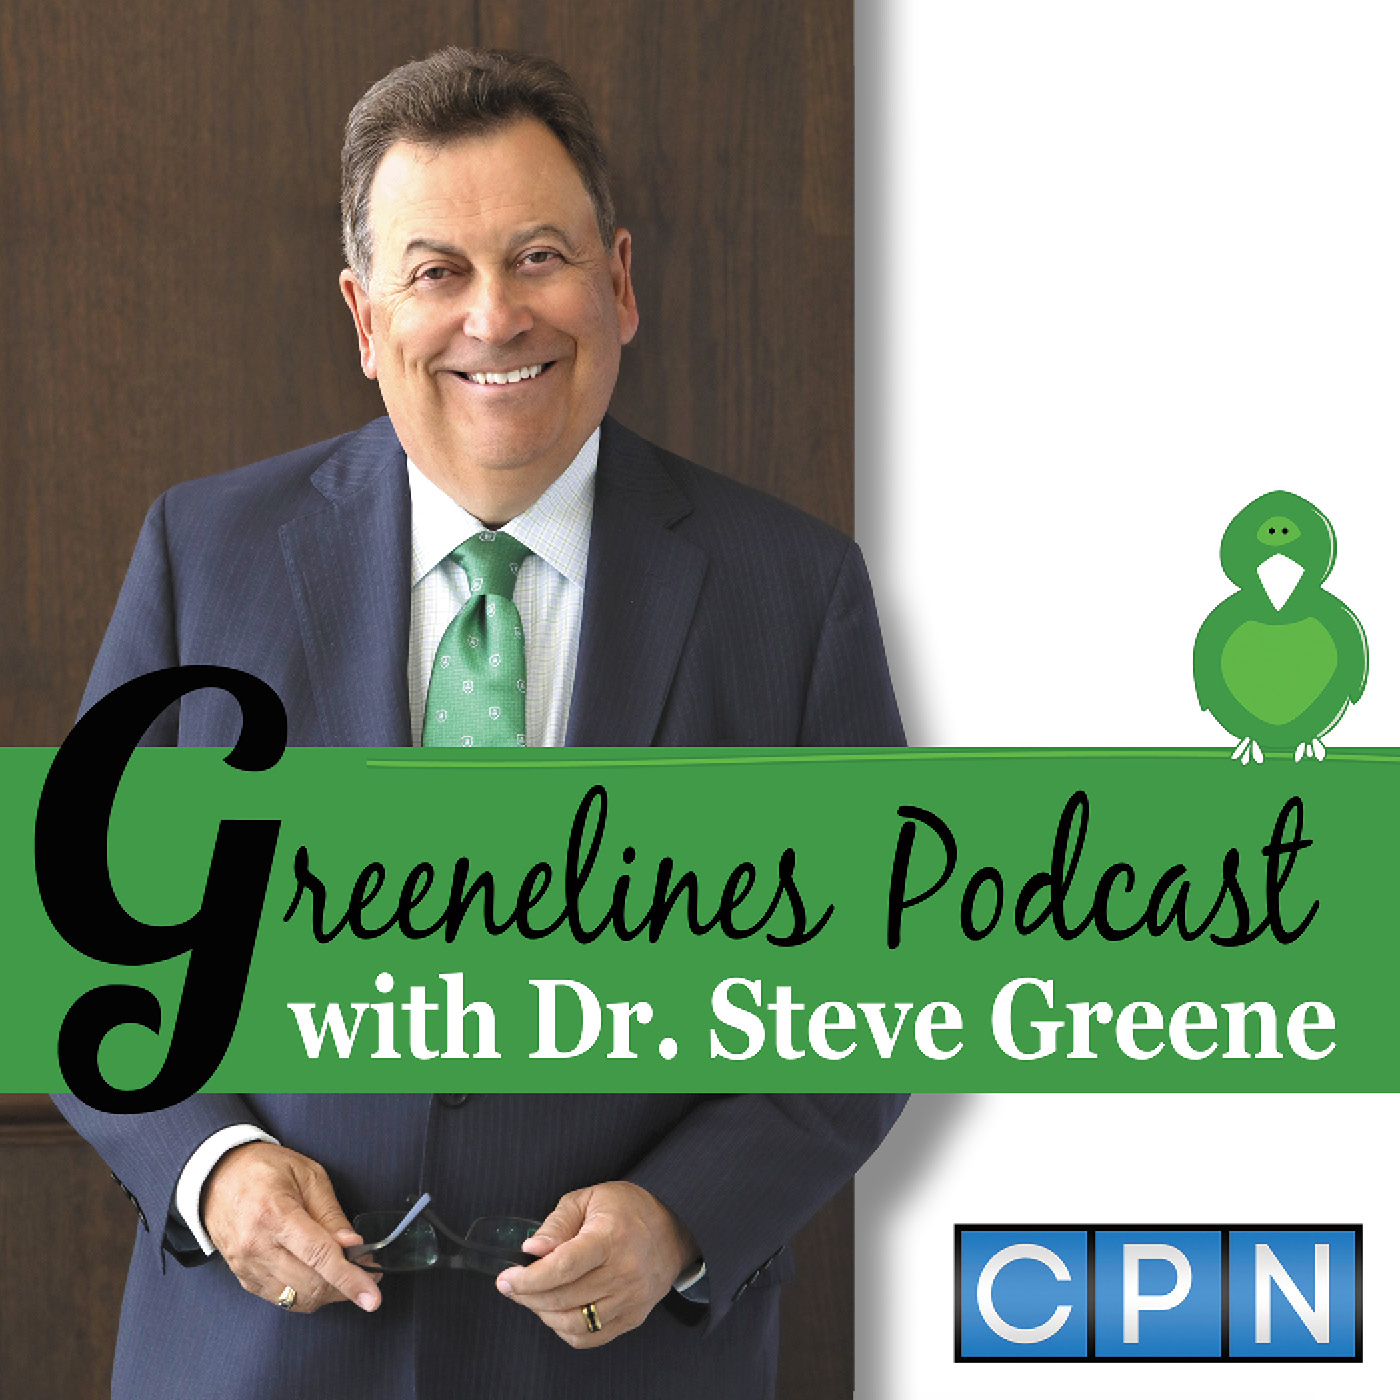 Greenelines Friday Story: Texting, Milkshakes and So Little Time